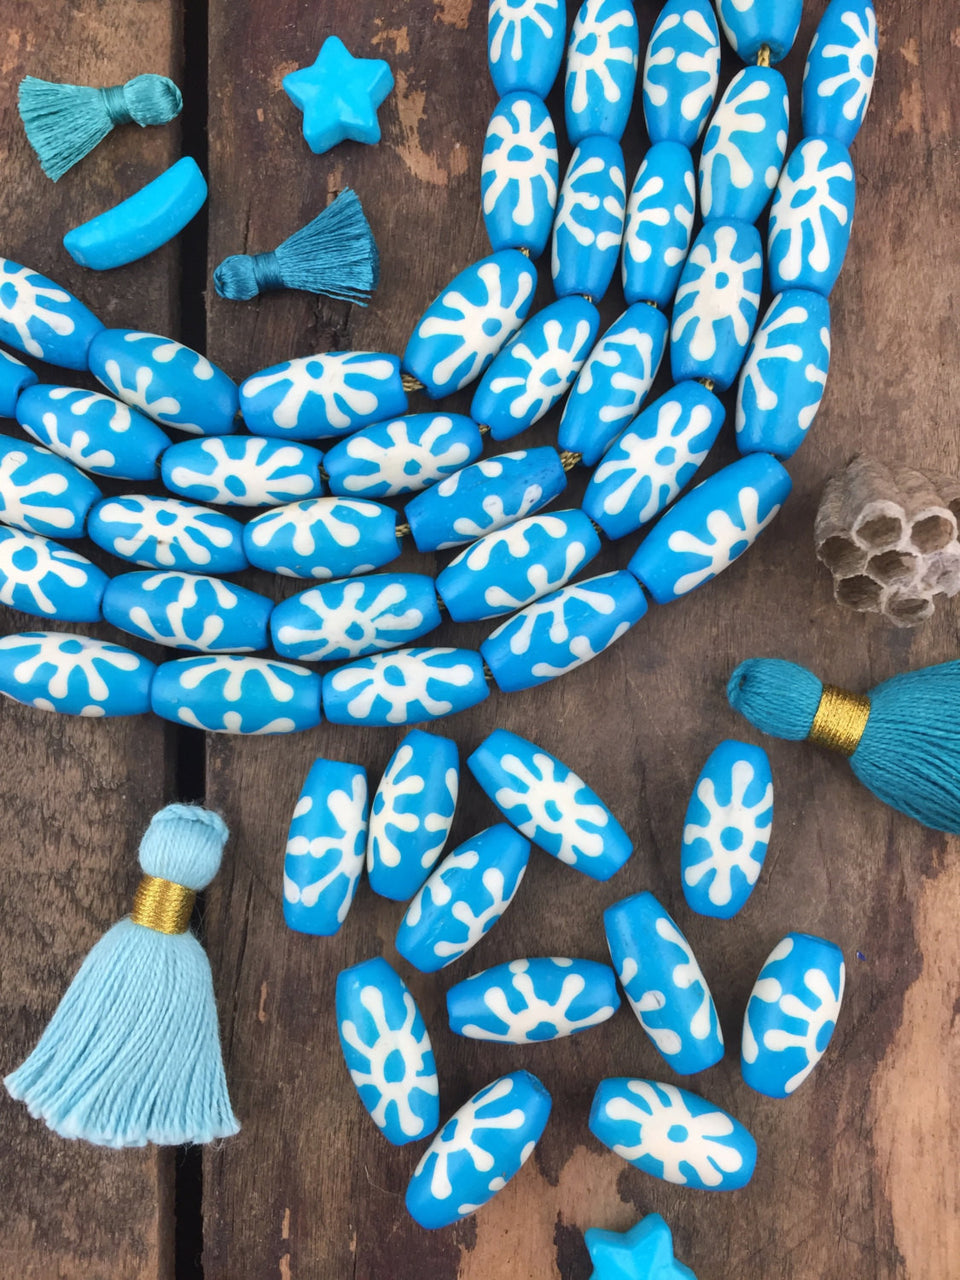 Turquoise Sunburst: Hand Painted Bone Beads, 10x17mm, 11 pieces - ShopWomanShopsWorld.com. Bone Beads, Tassels, Pom Poms, African Beads.